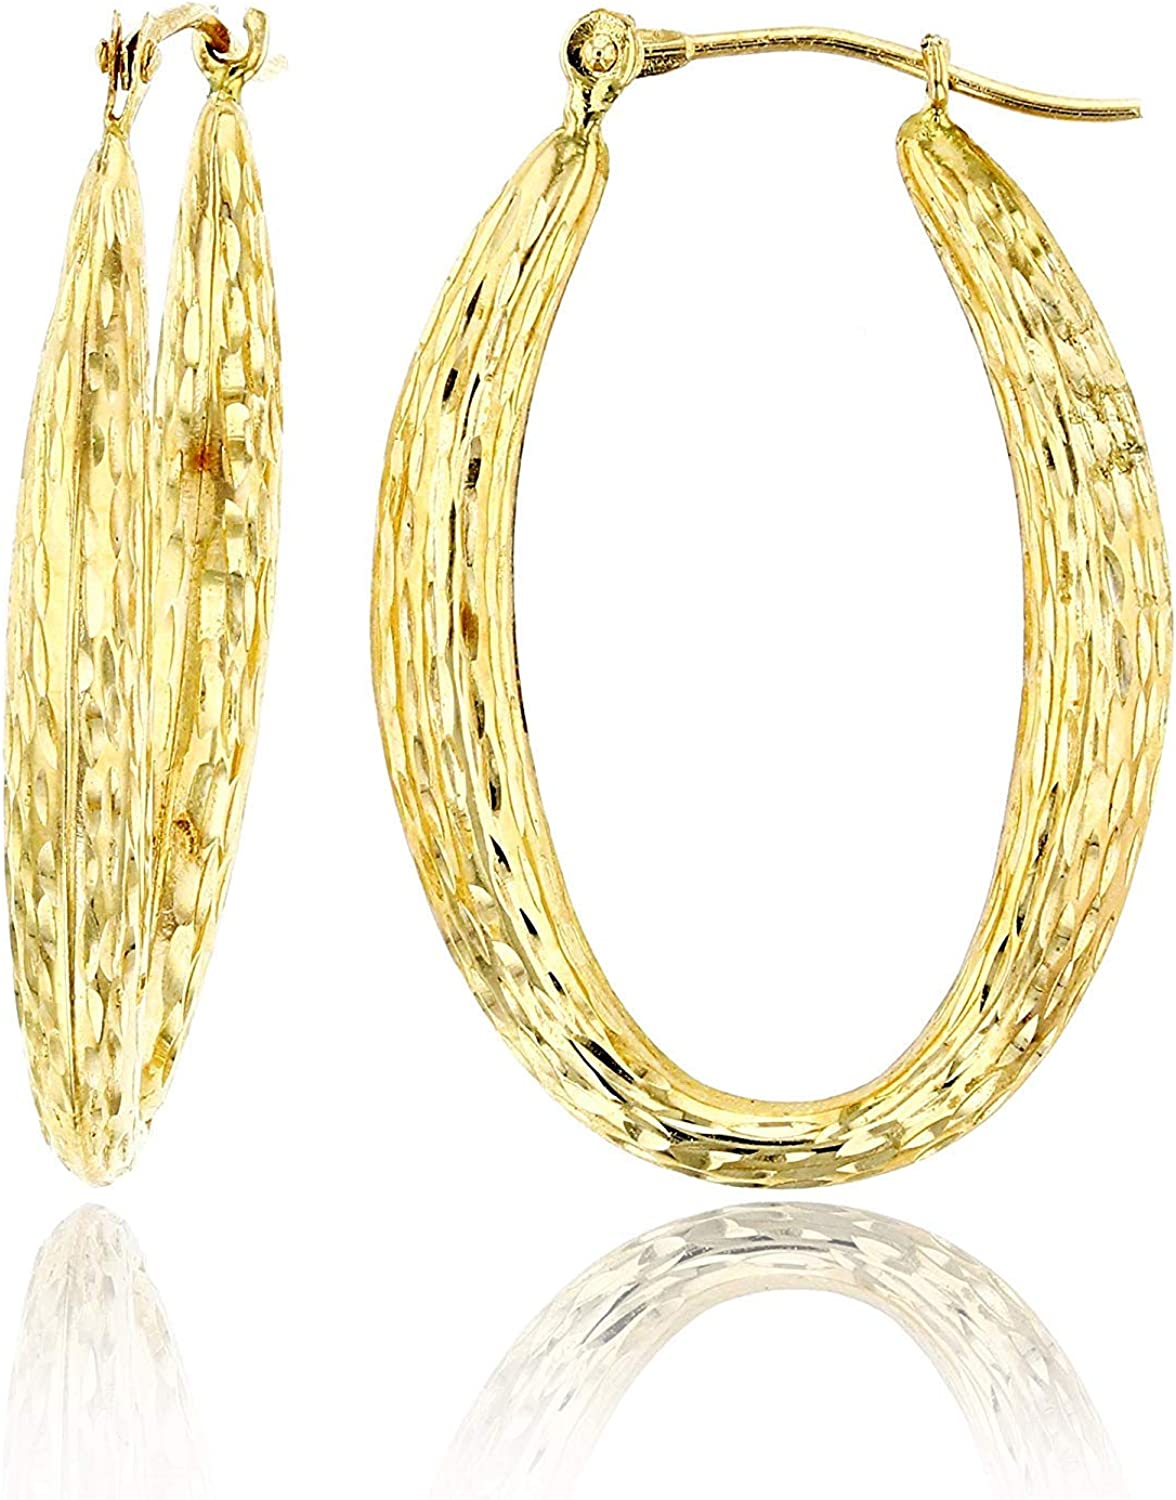 14K Yellow Gold High Polished Oval Hoop Earrings with Hinged Clasp | Various Sizes & Design | Yellow Gold Hoops | Solid 14k Gold Earrings Gold For Women and Girls